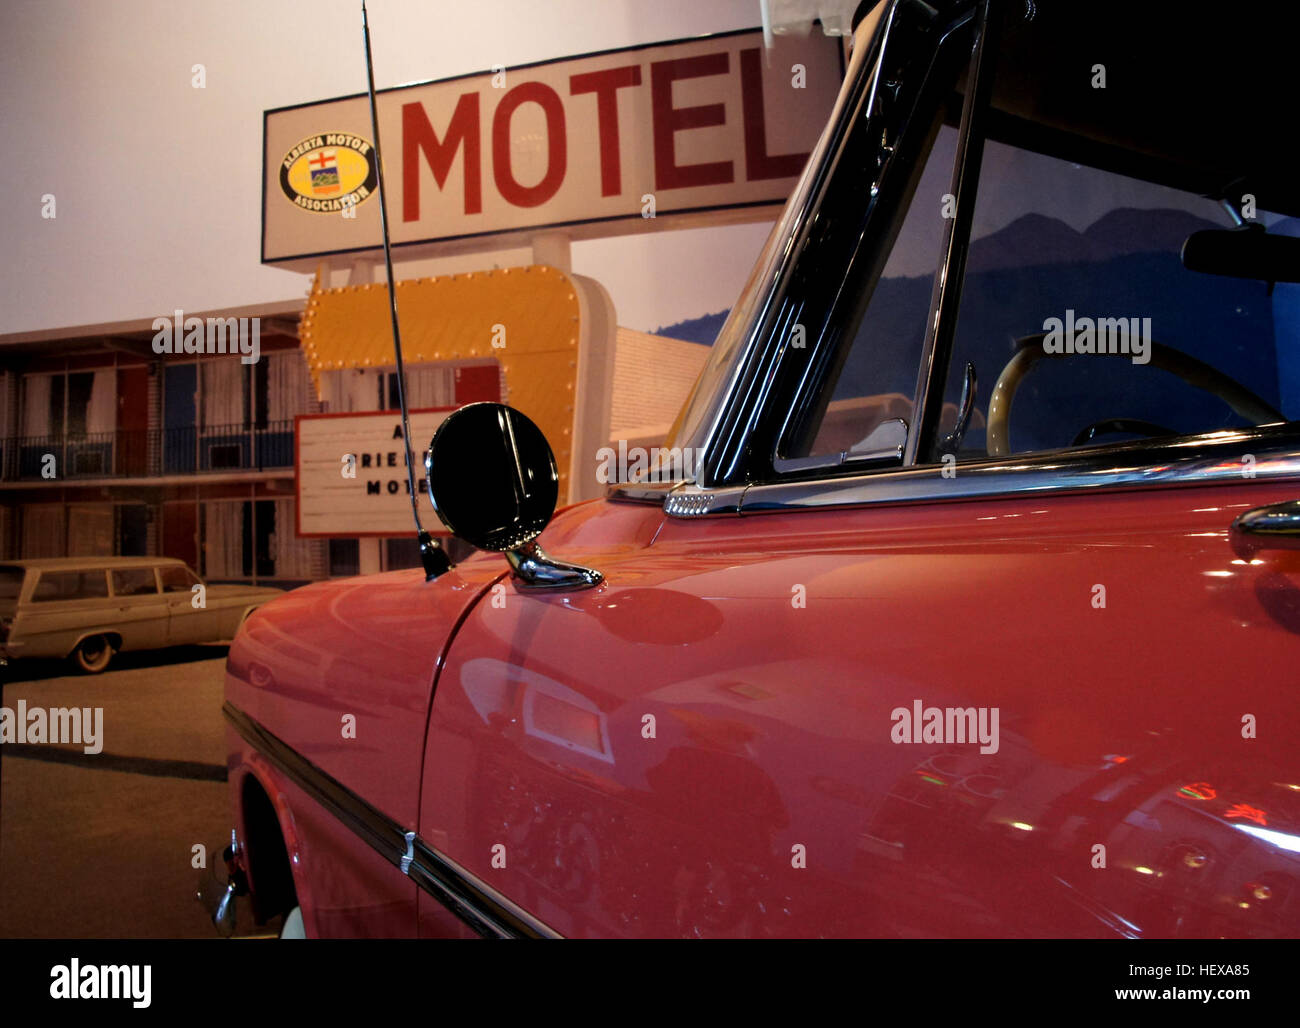 Gasoline Alley Heritage Park Calgary Stock Photos & Gasoline Alley ...